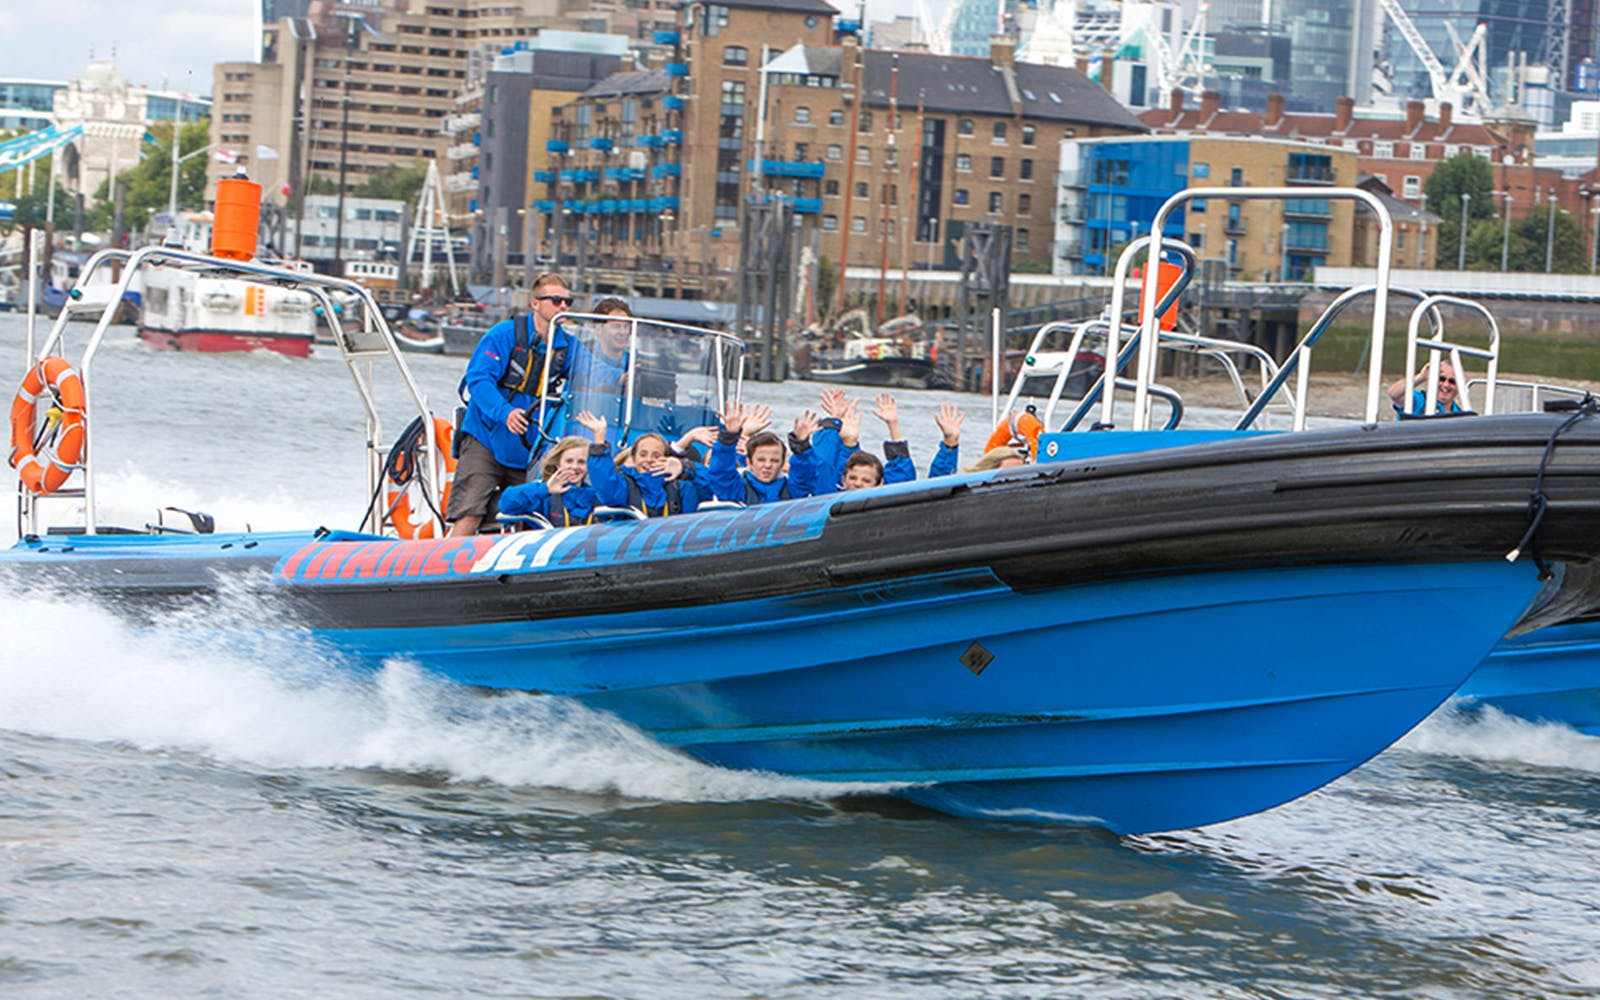 Thames High Speed RIB Boat Experience